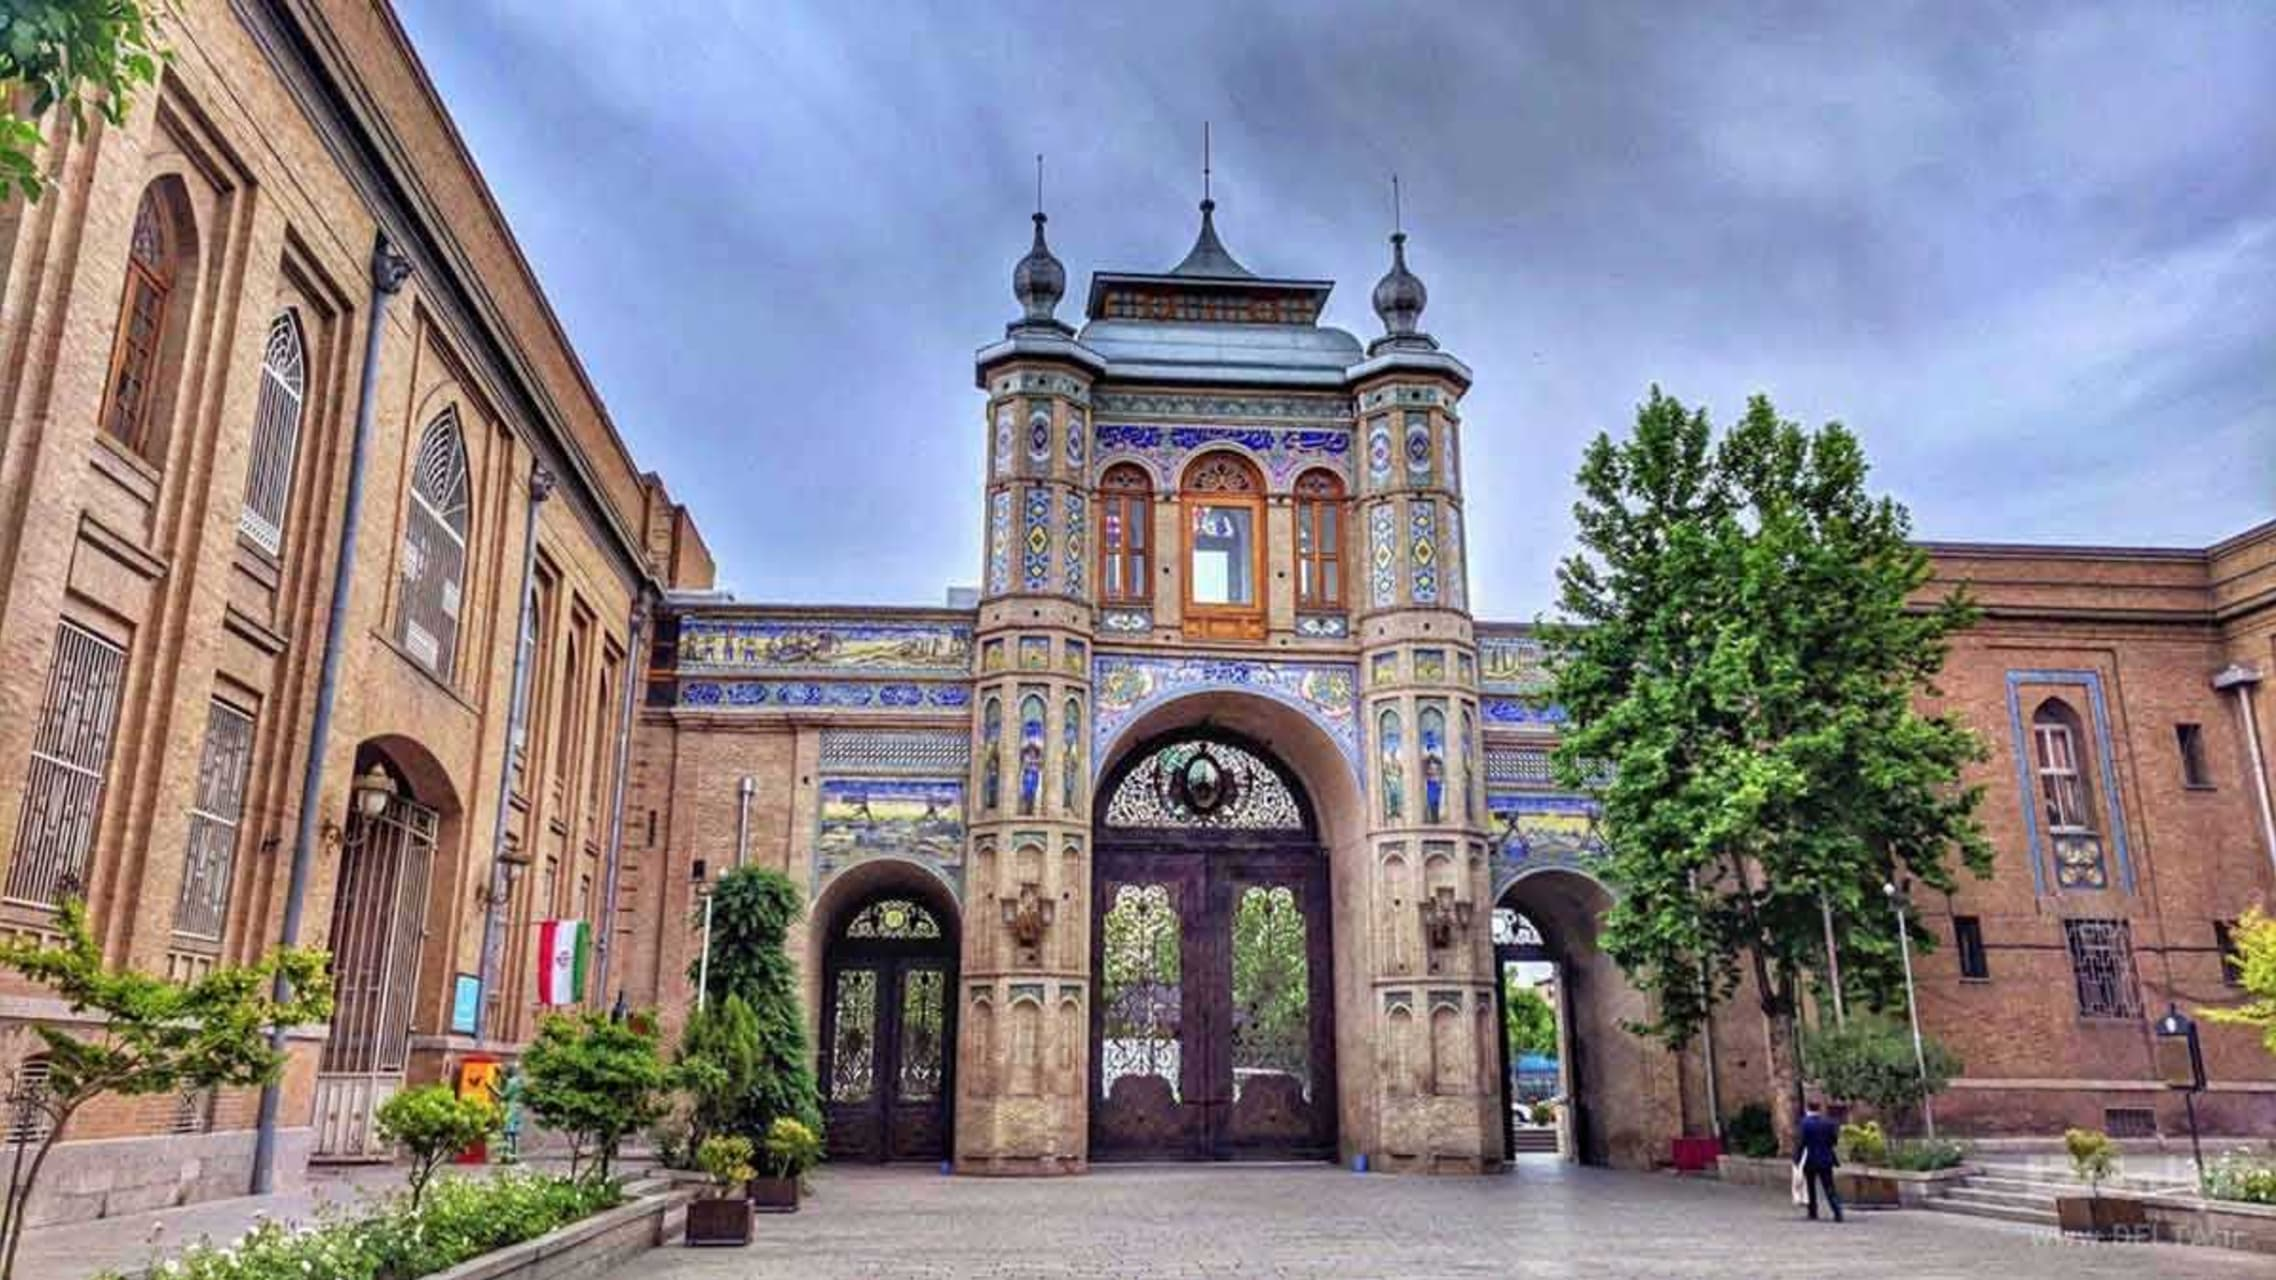 Tehran - A Gate Between Two Centuries: The National Gate